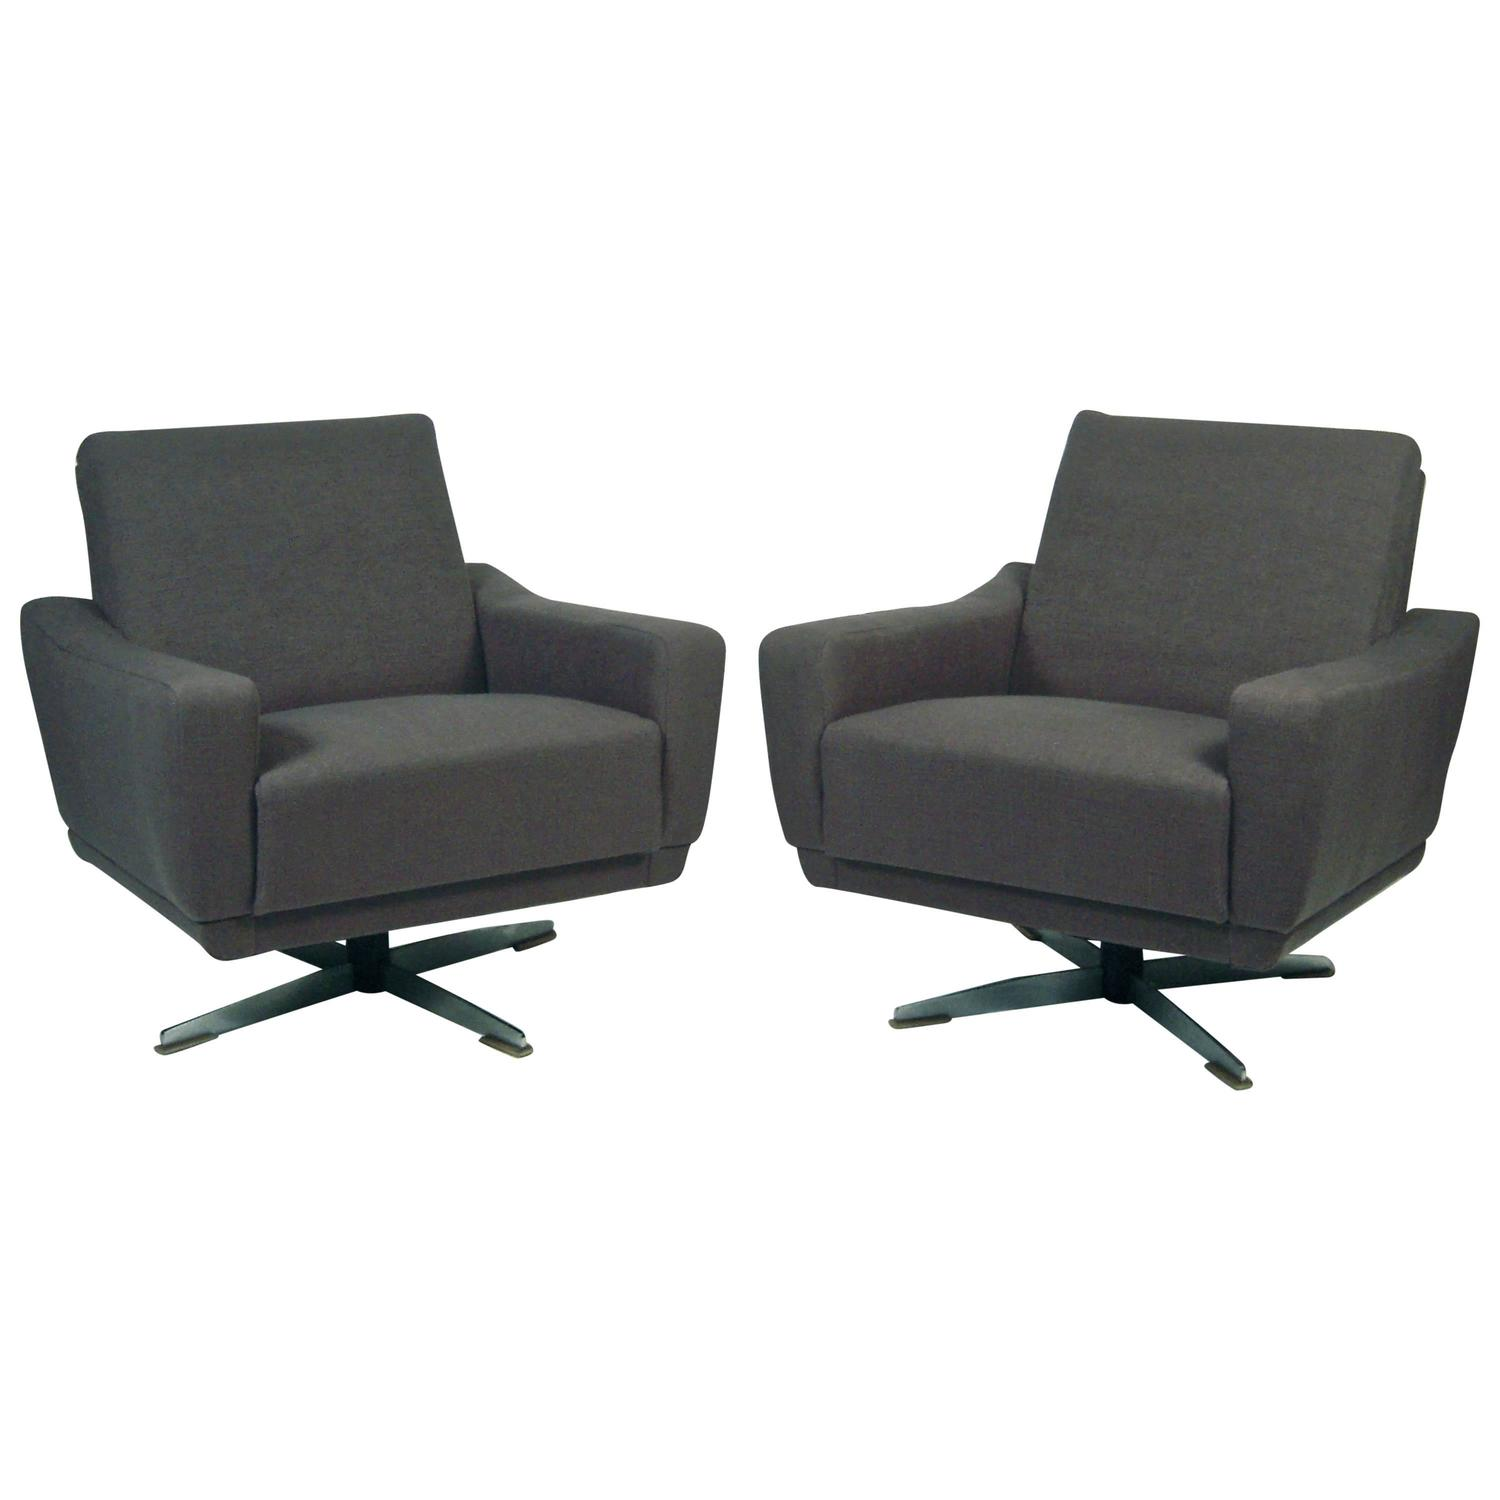 Superior Pair Of Unusual And Versatile German Mid Century Modern Swivel Chairs At  1stdibs